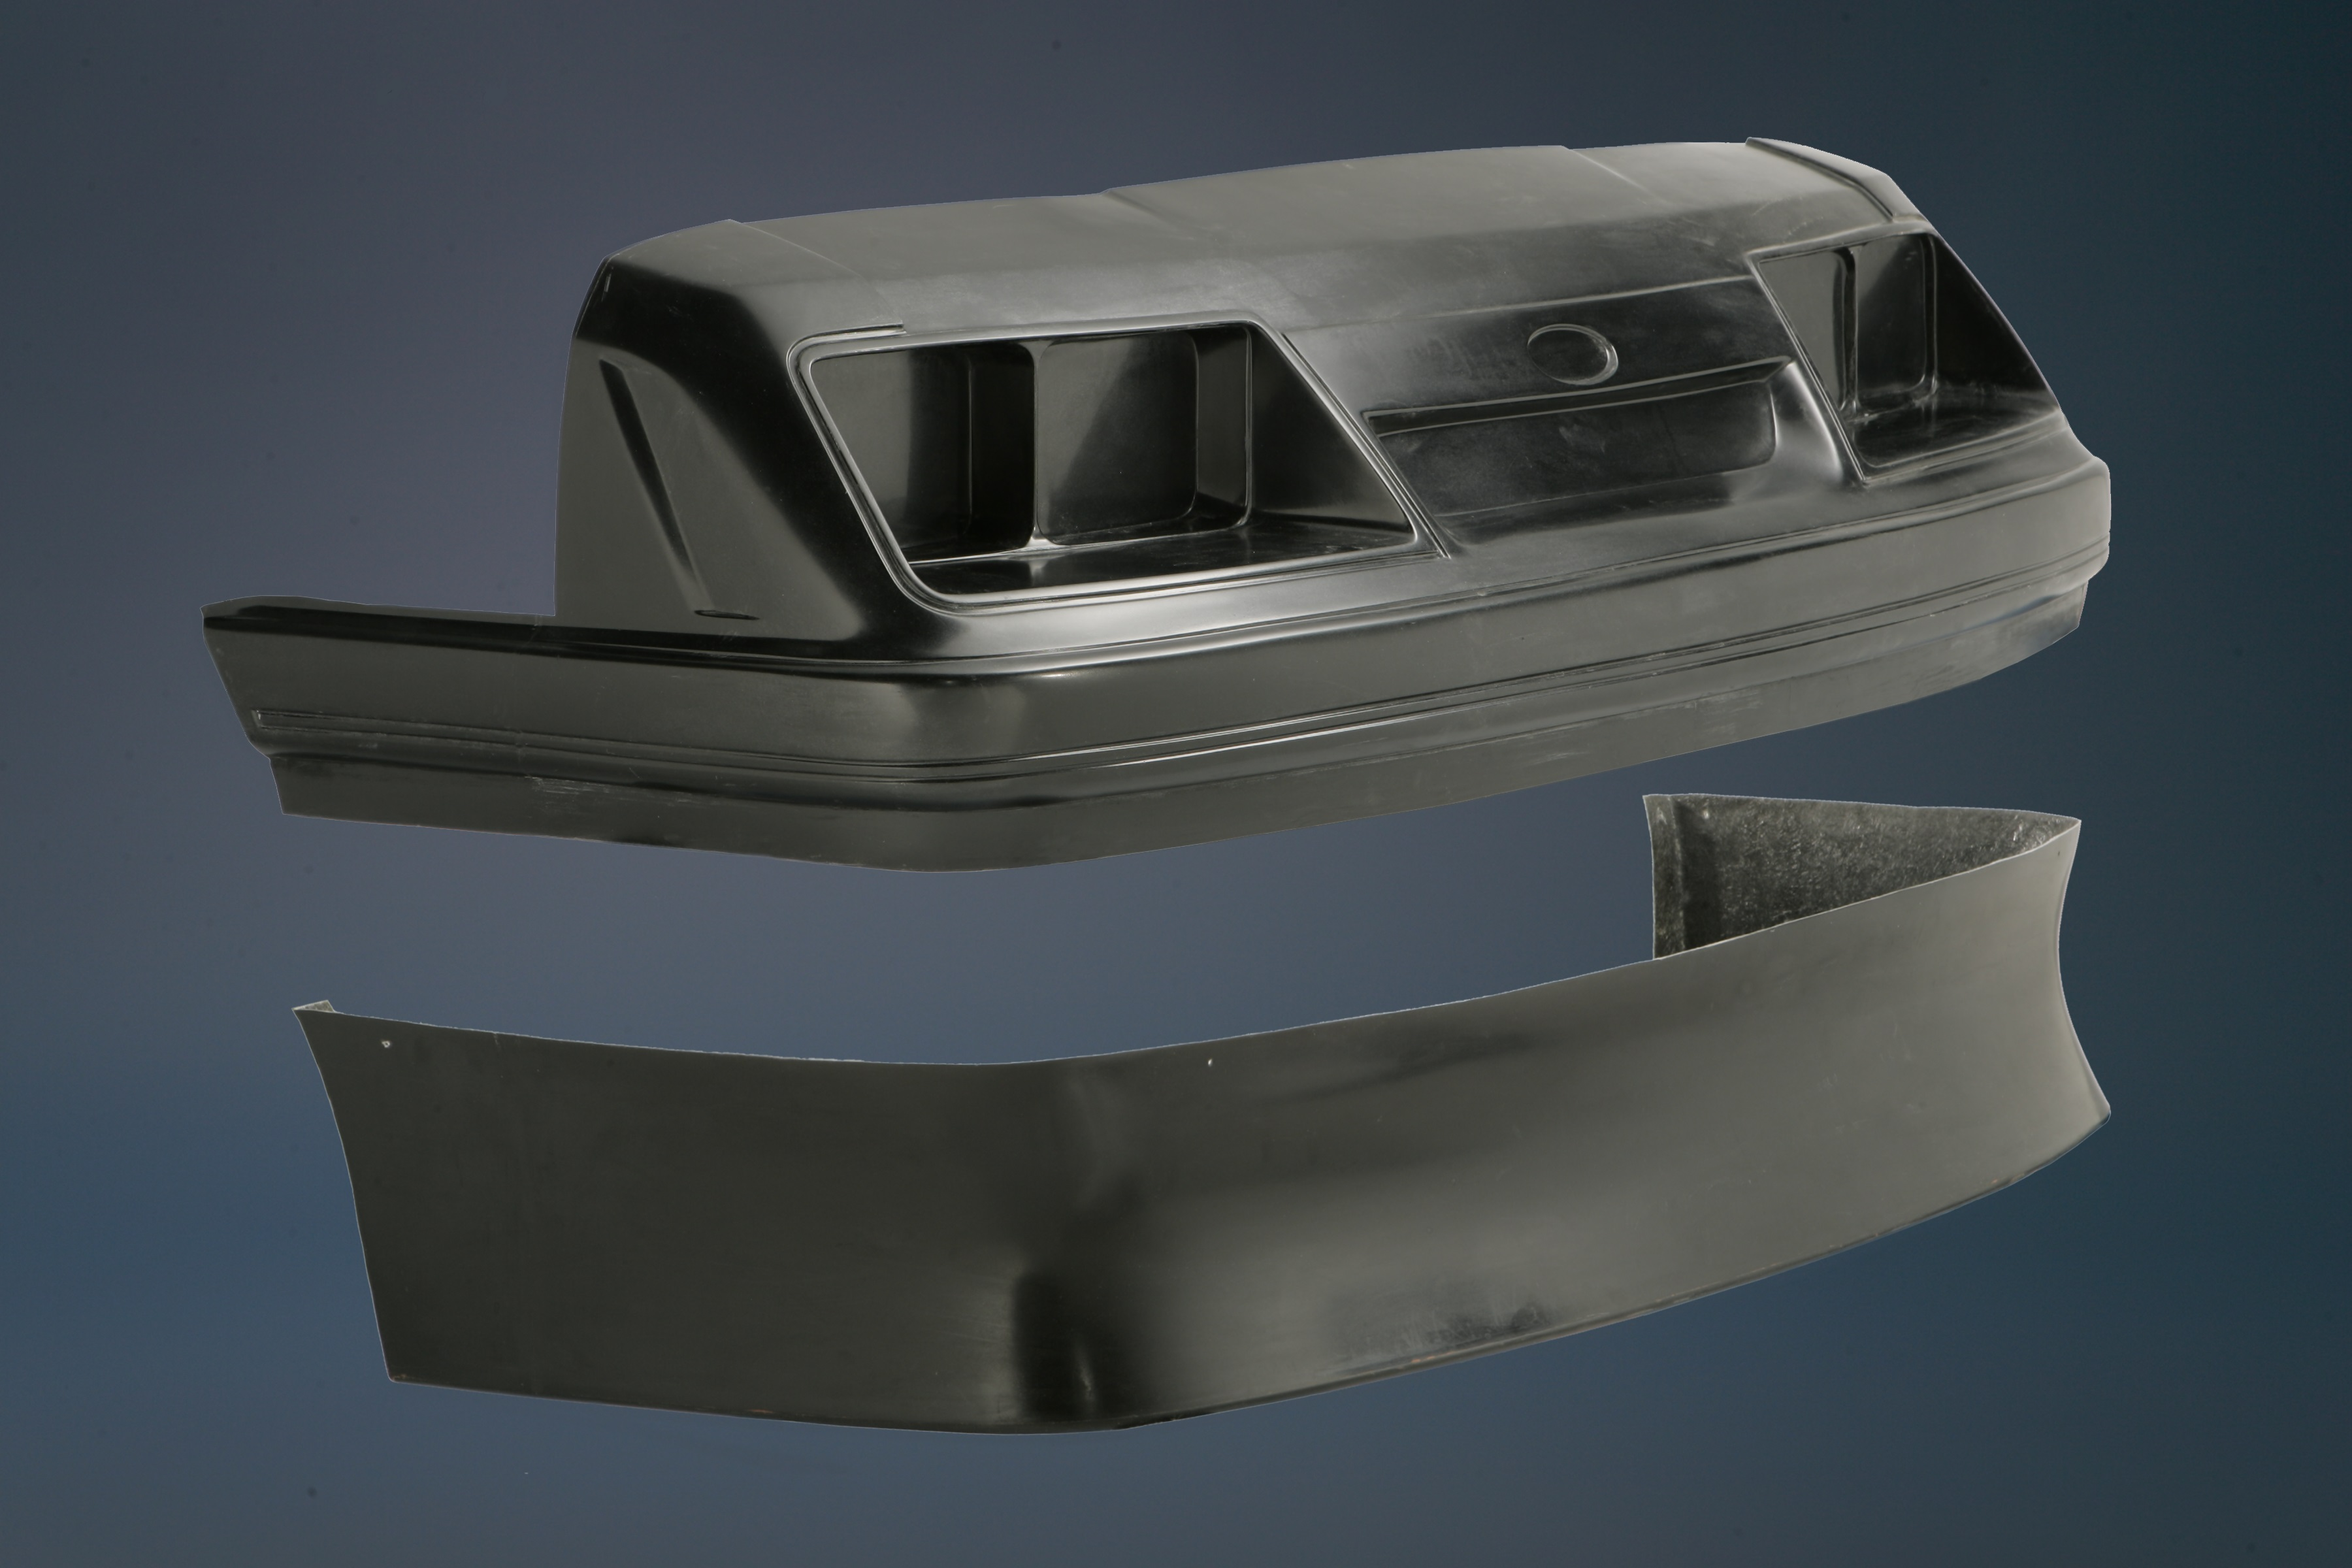 85 86 Mustang Outlaw Front Fascia Removable Spoiler FG